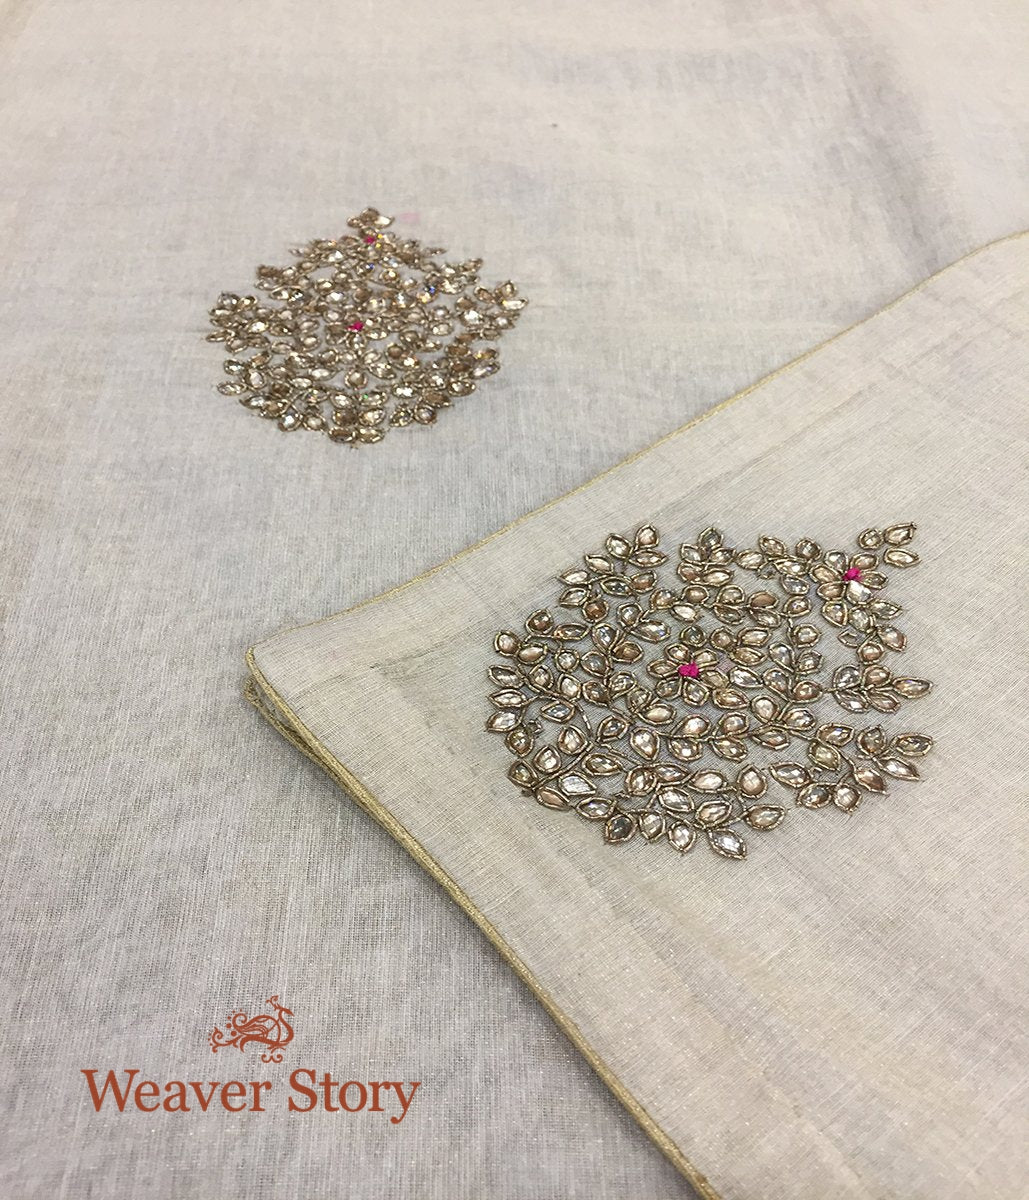 Handwoven Ivory Cotton Tissue Dupatta with Zardozi and Kundan work